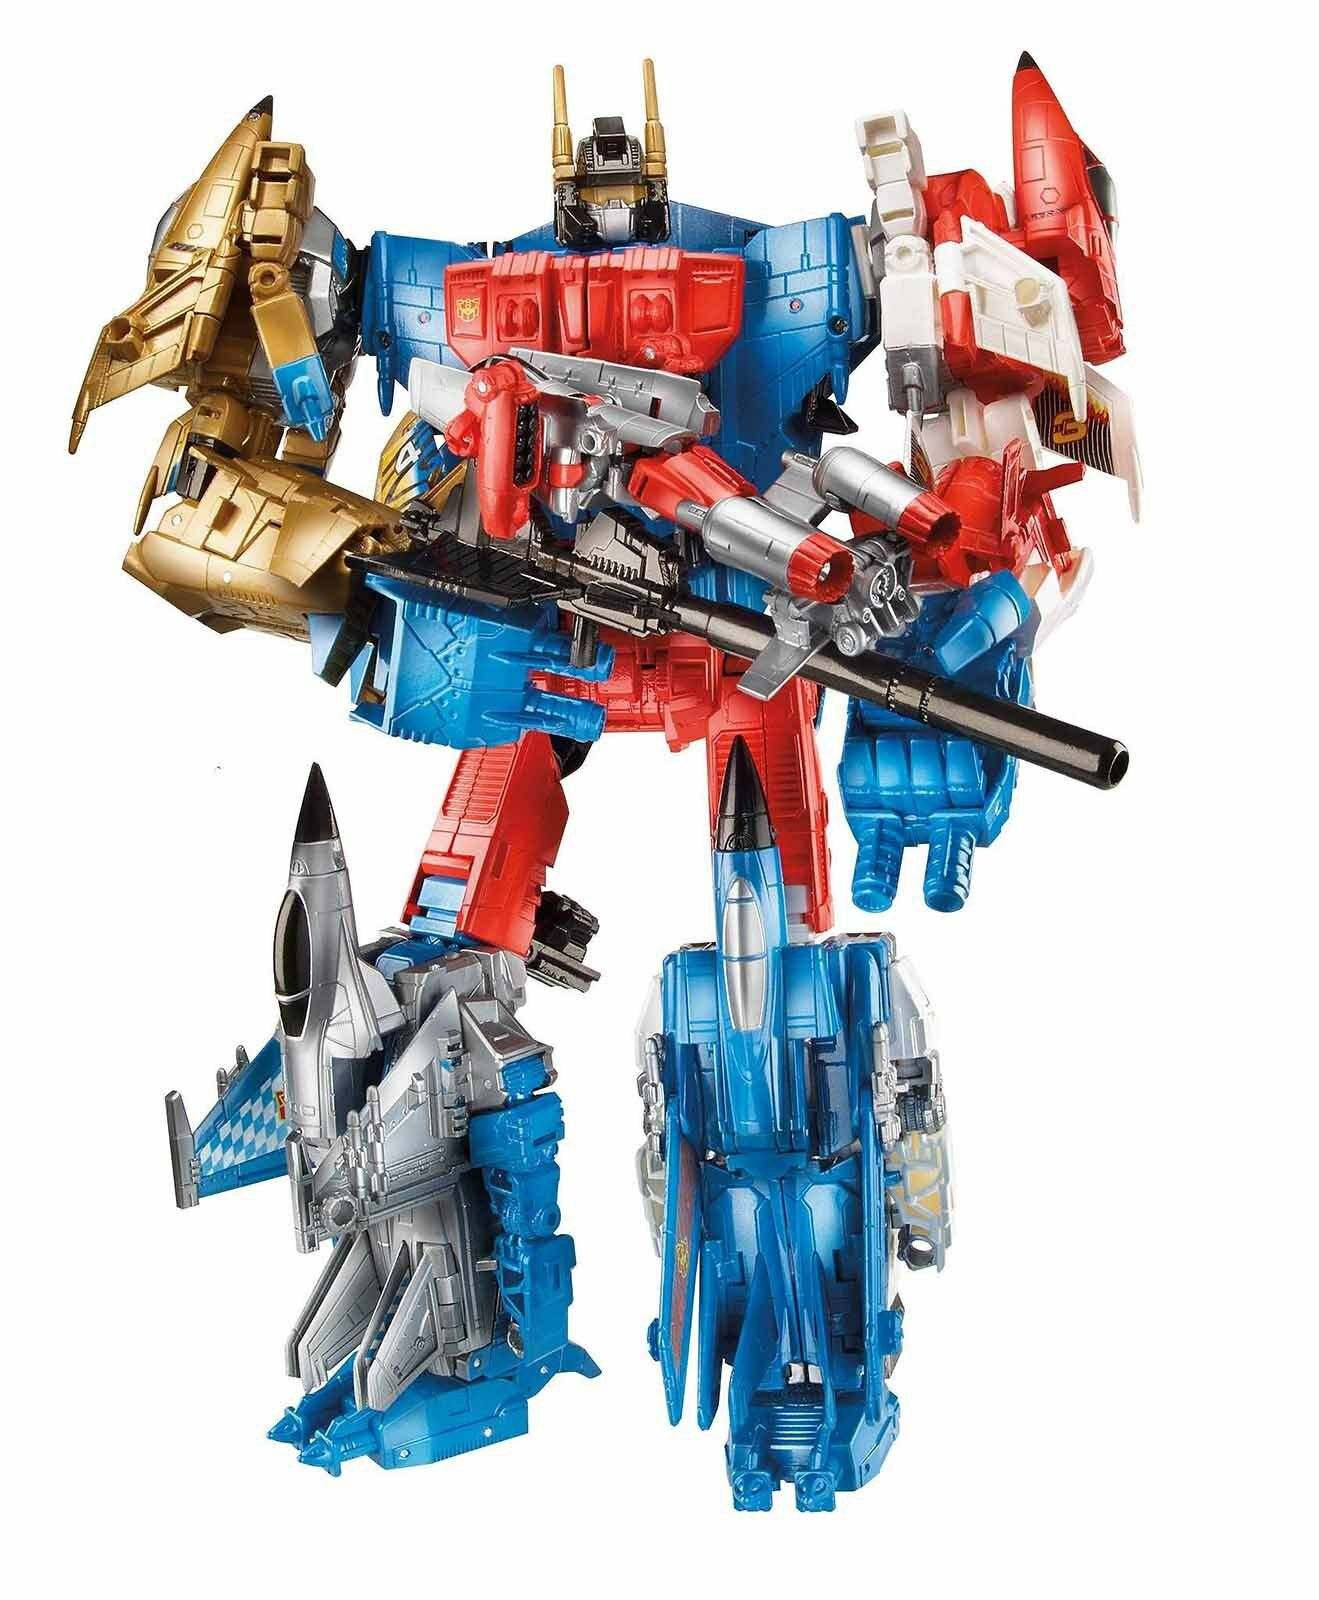 New Transformers Generations Combiner Wars SUPERION AERIALBOT Set Collection Toy